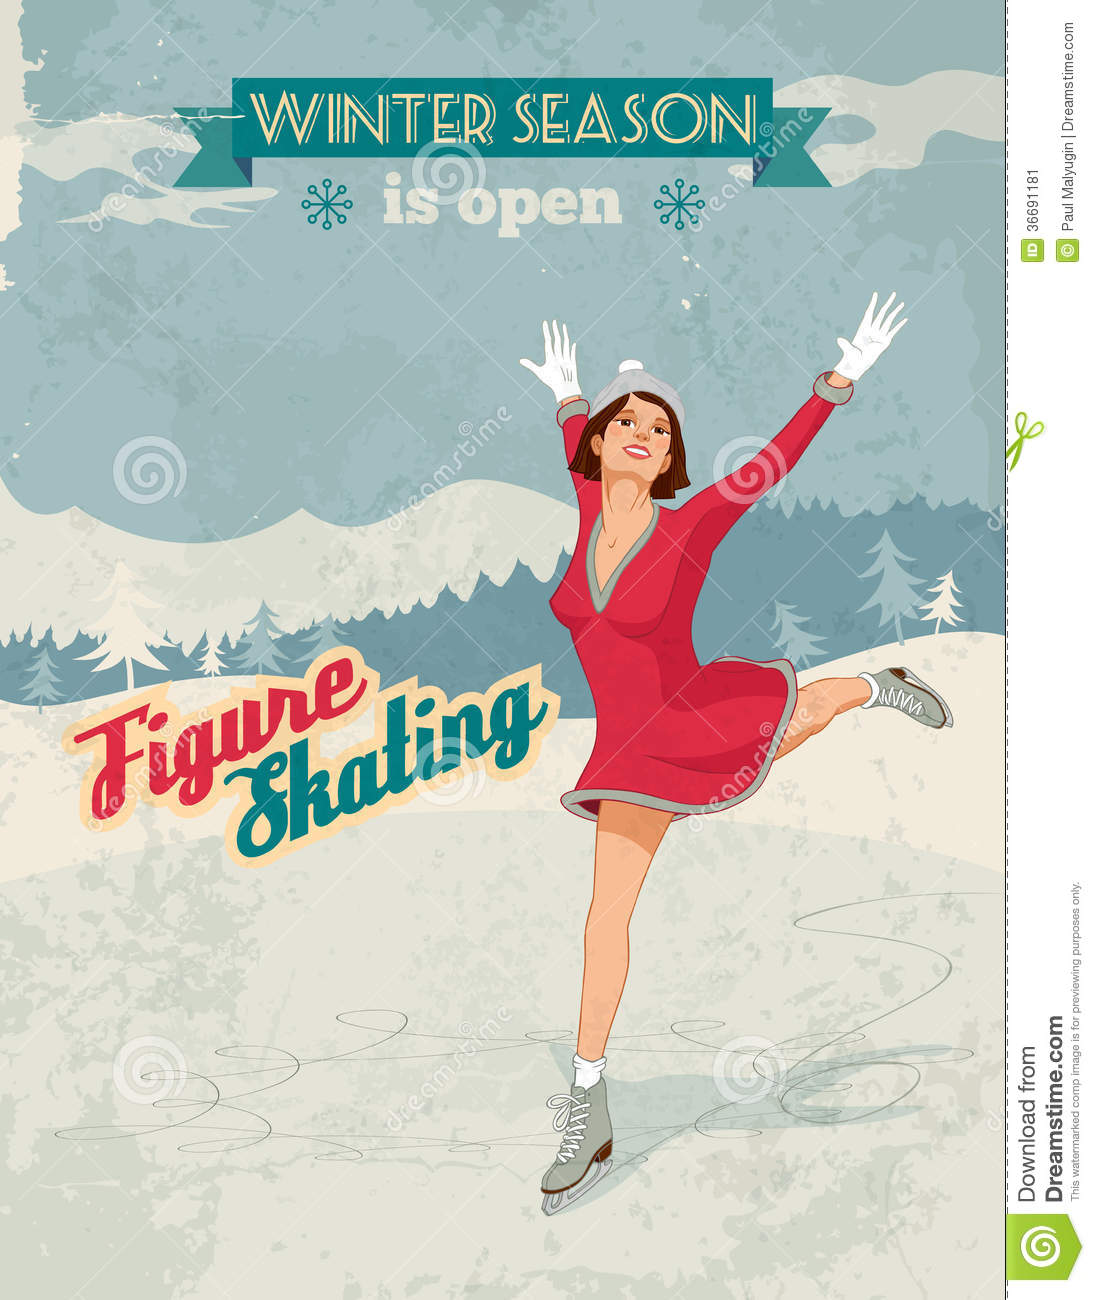 Winter sport poster in retro style with figure skater girl and titles ...